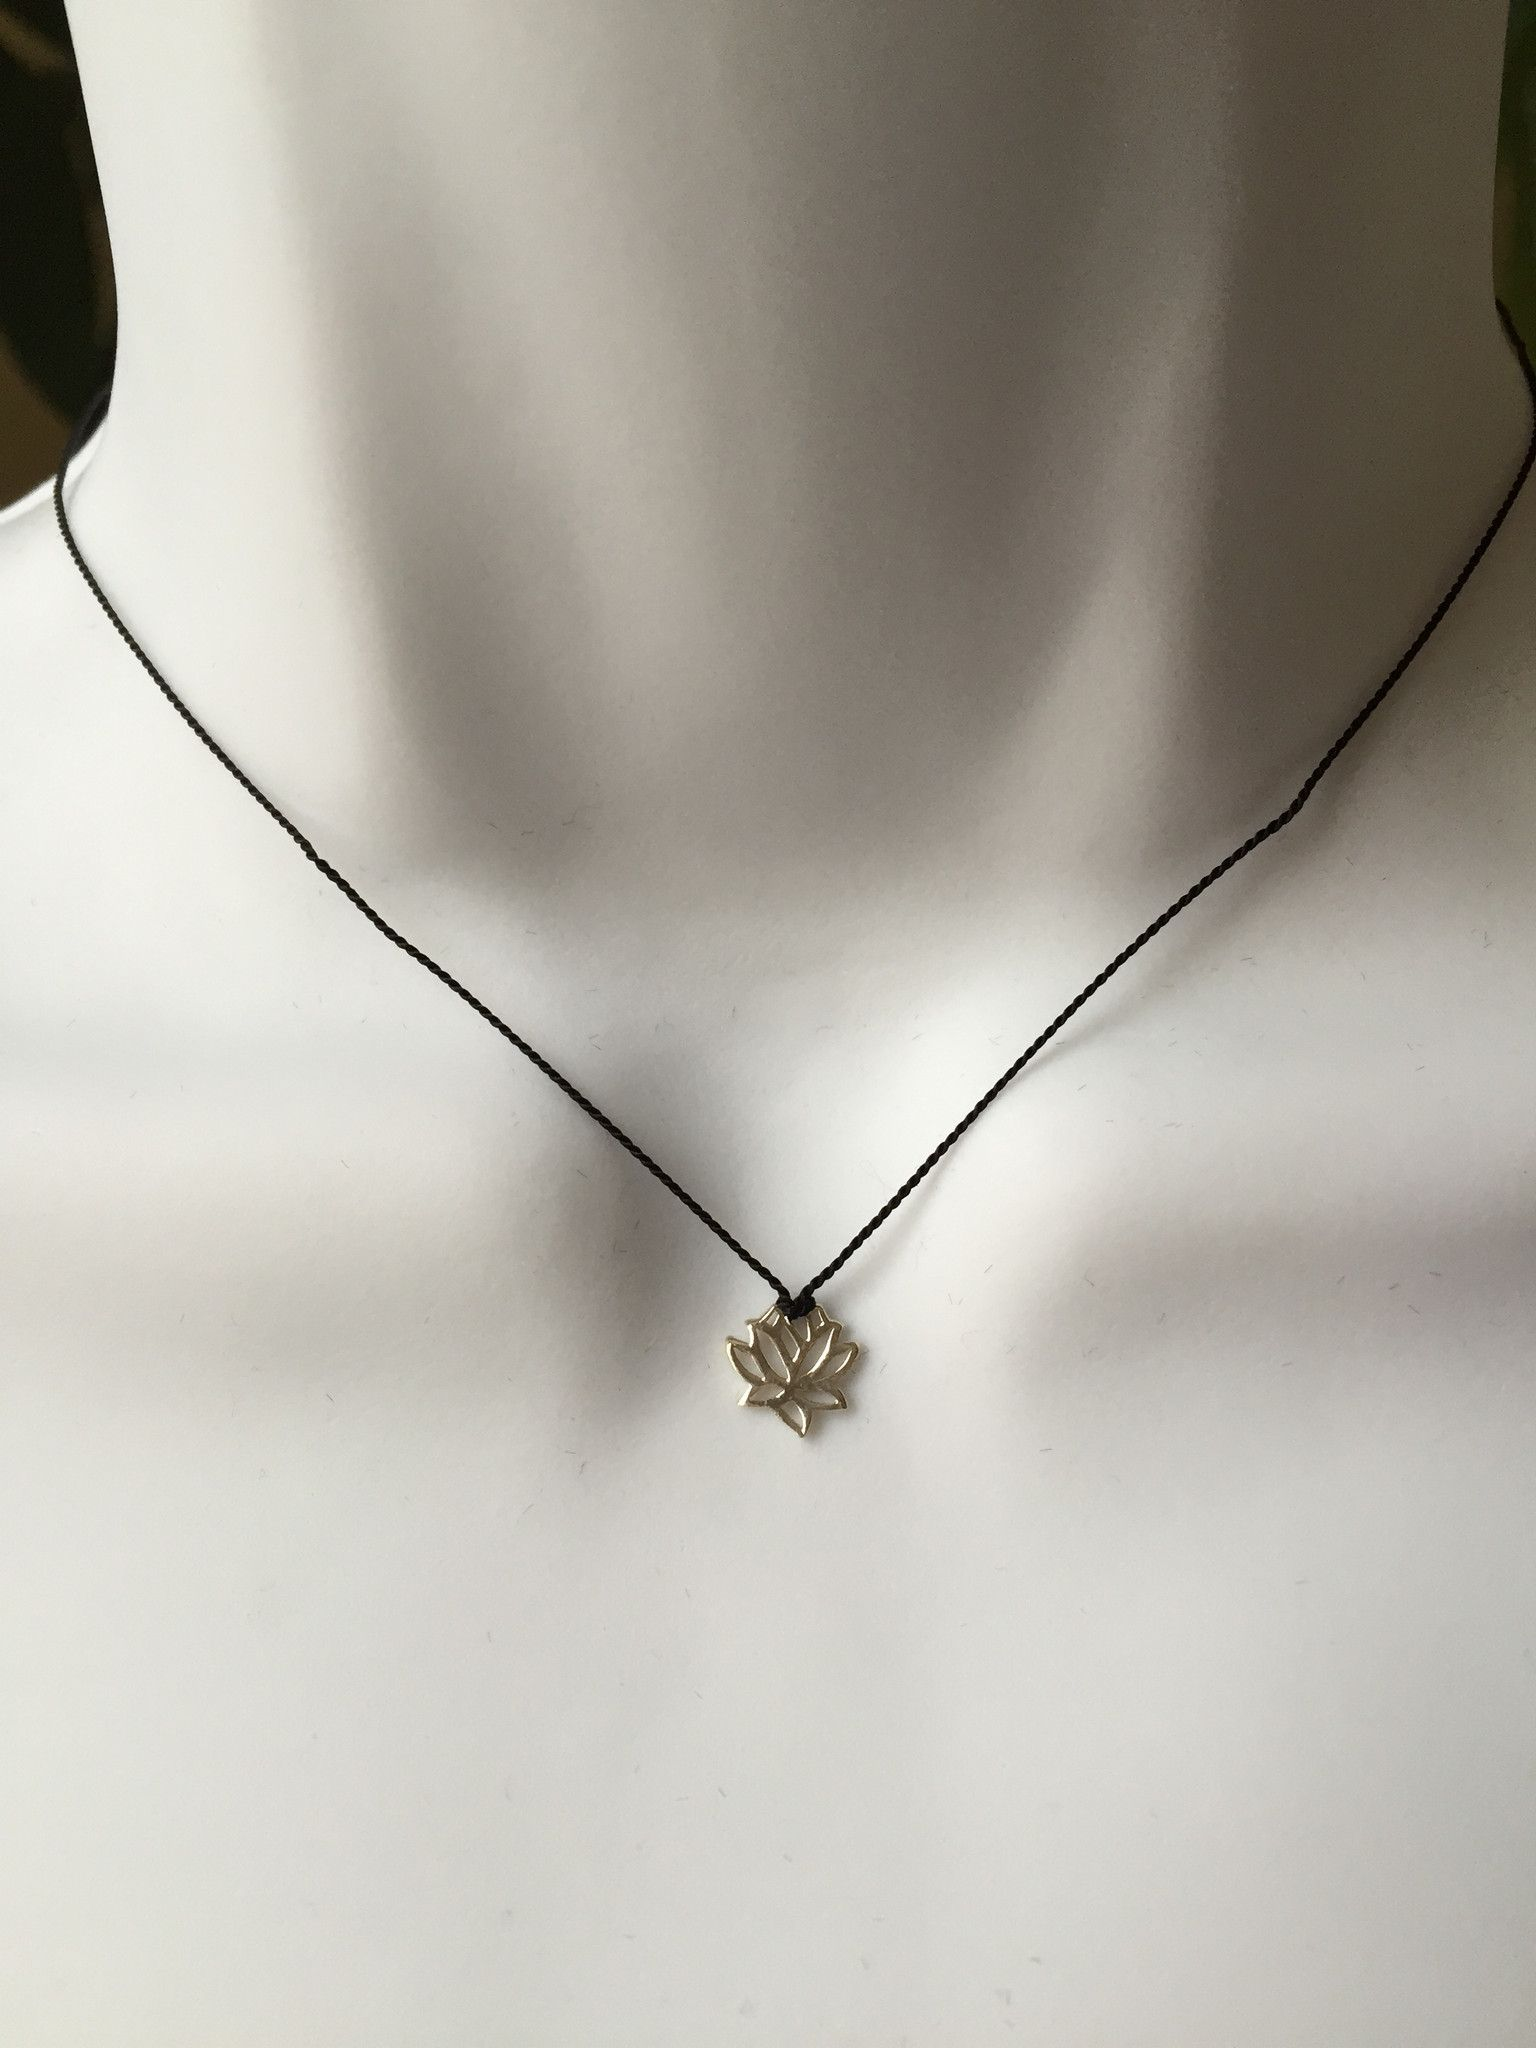 Lotus Flower Inspirational Sterling Silver Necklace